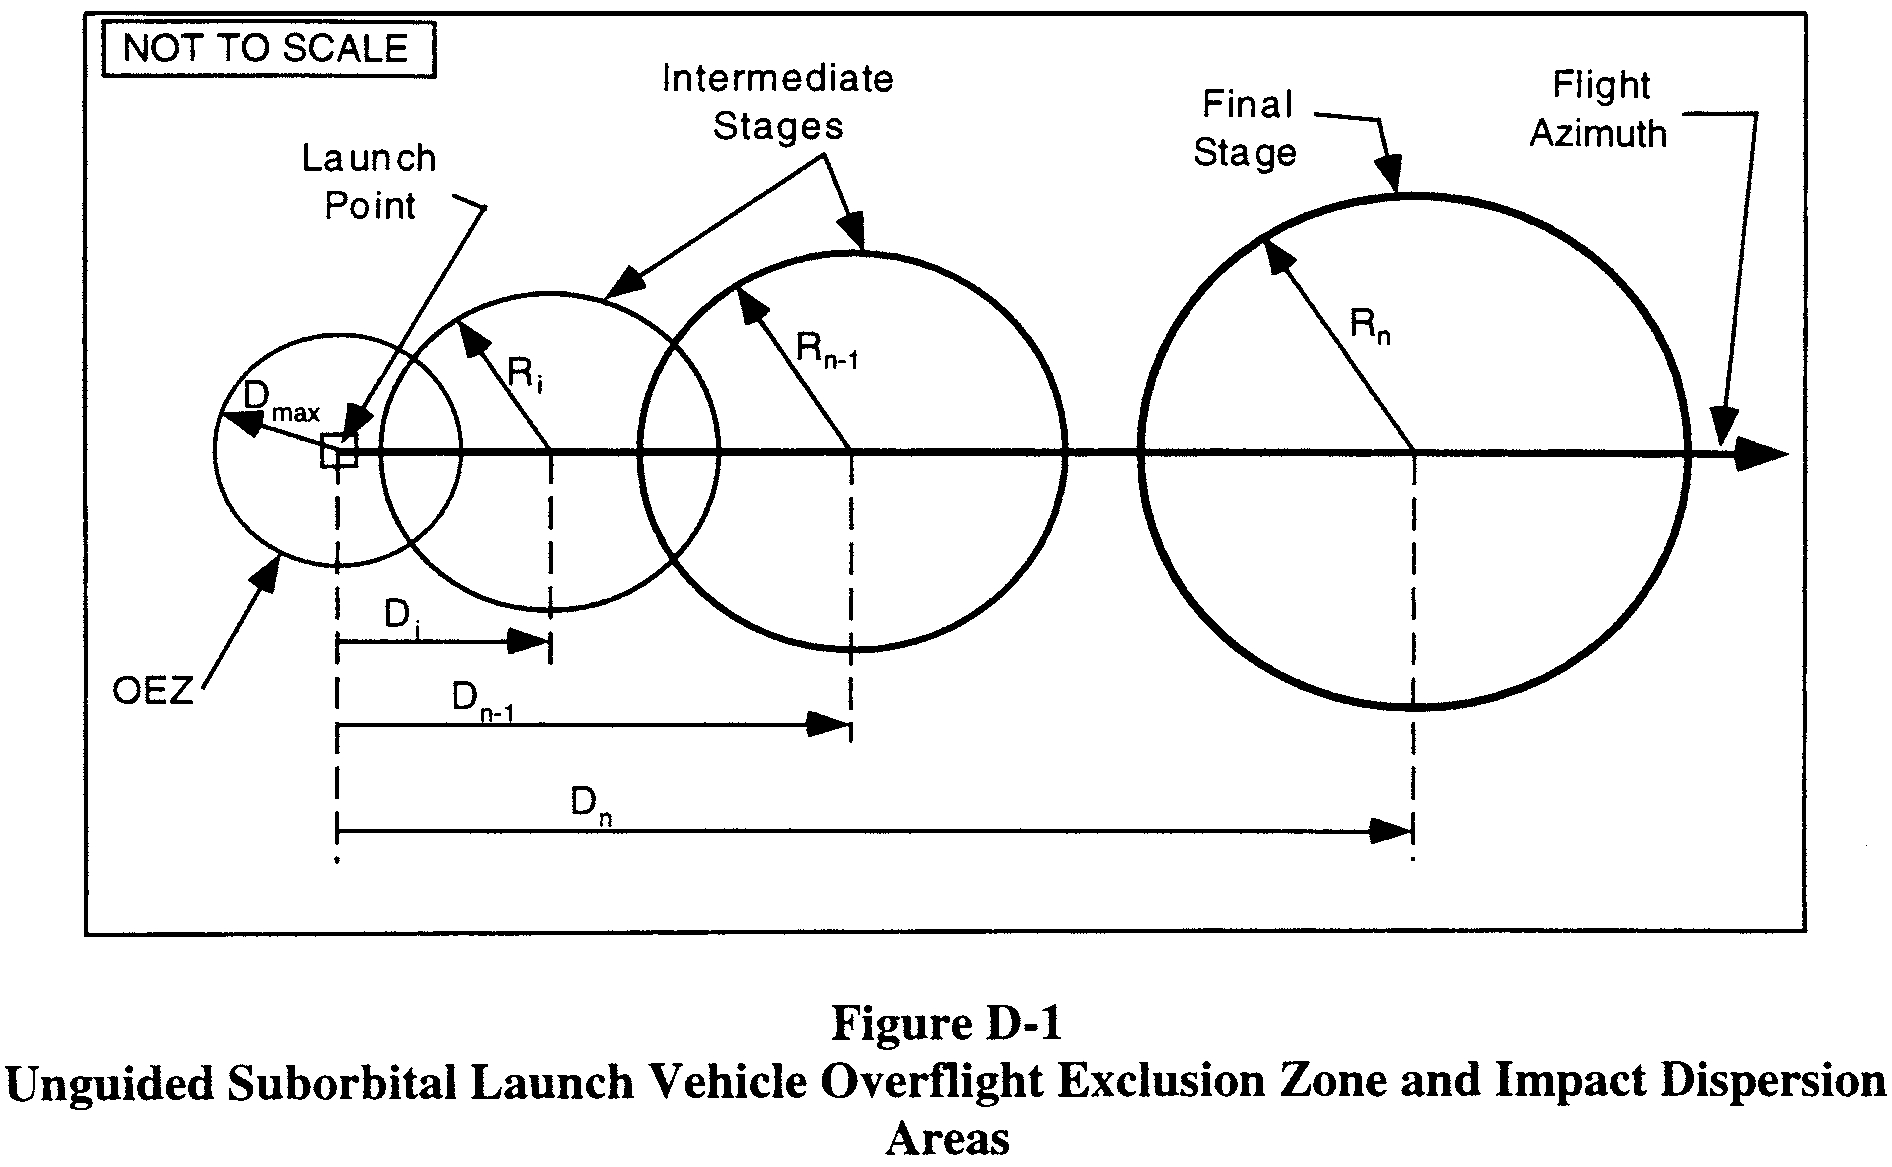 Graphic of (4) An applicant shall display an overflight exclusion zone, each intermediate and final stage impact point (Di through Dn), and each impact dispersion area for the intermediate and final launch vehicle stages on maps in accordance with paragraph (b)(2).